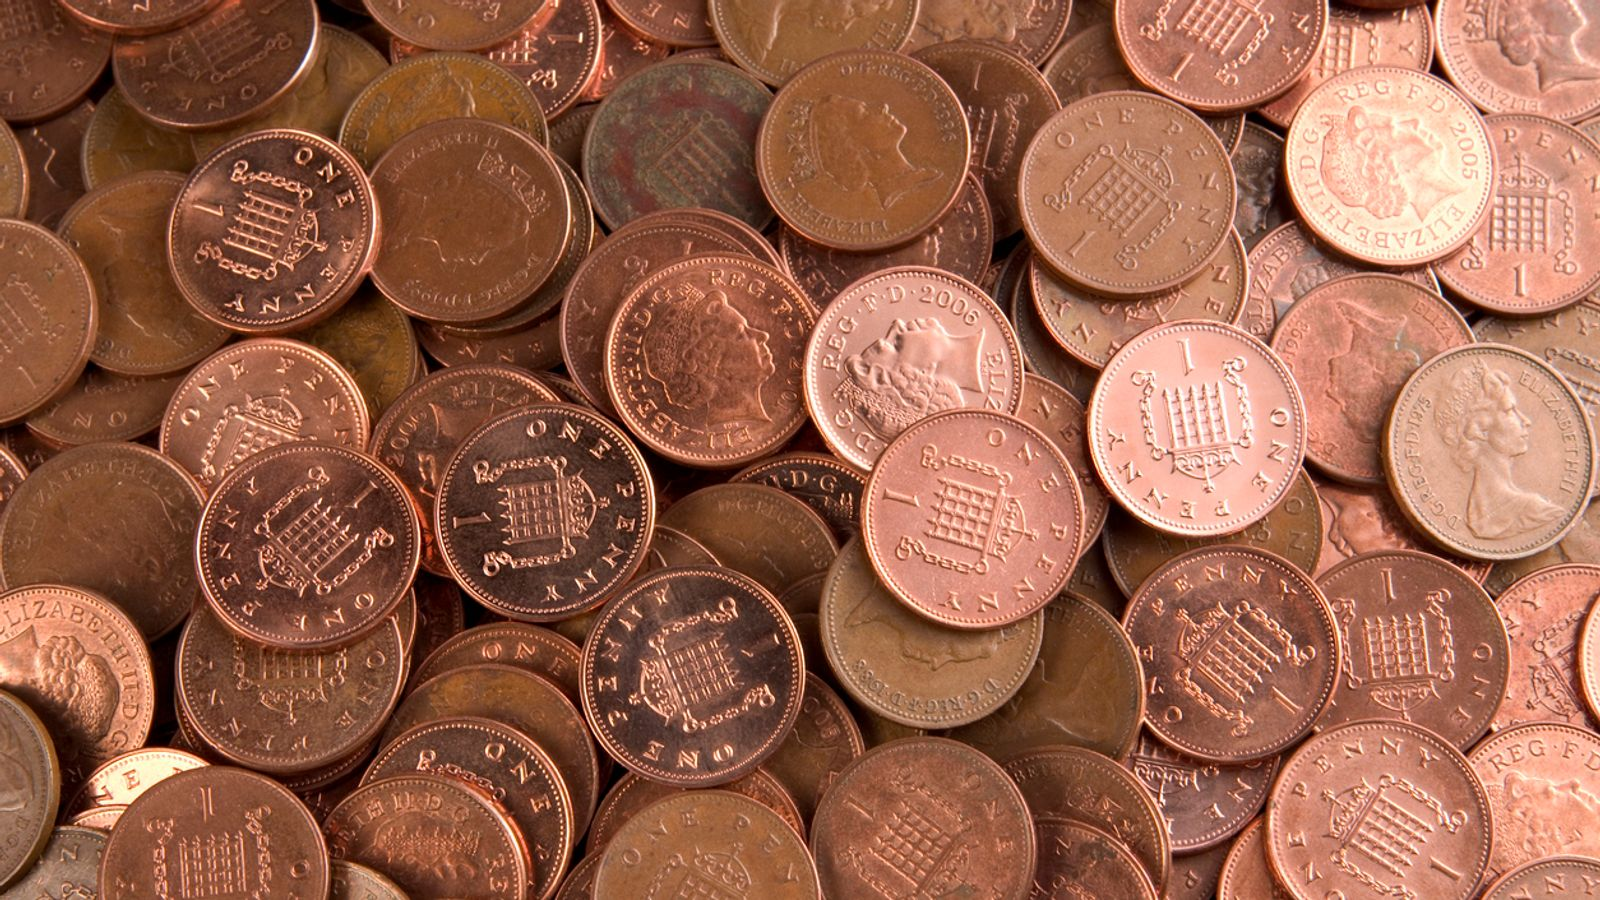 Government to consult on ditching 1p and 2p coins as well as £50 note